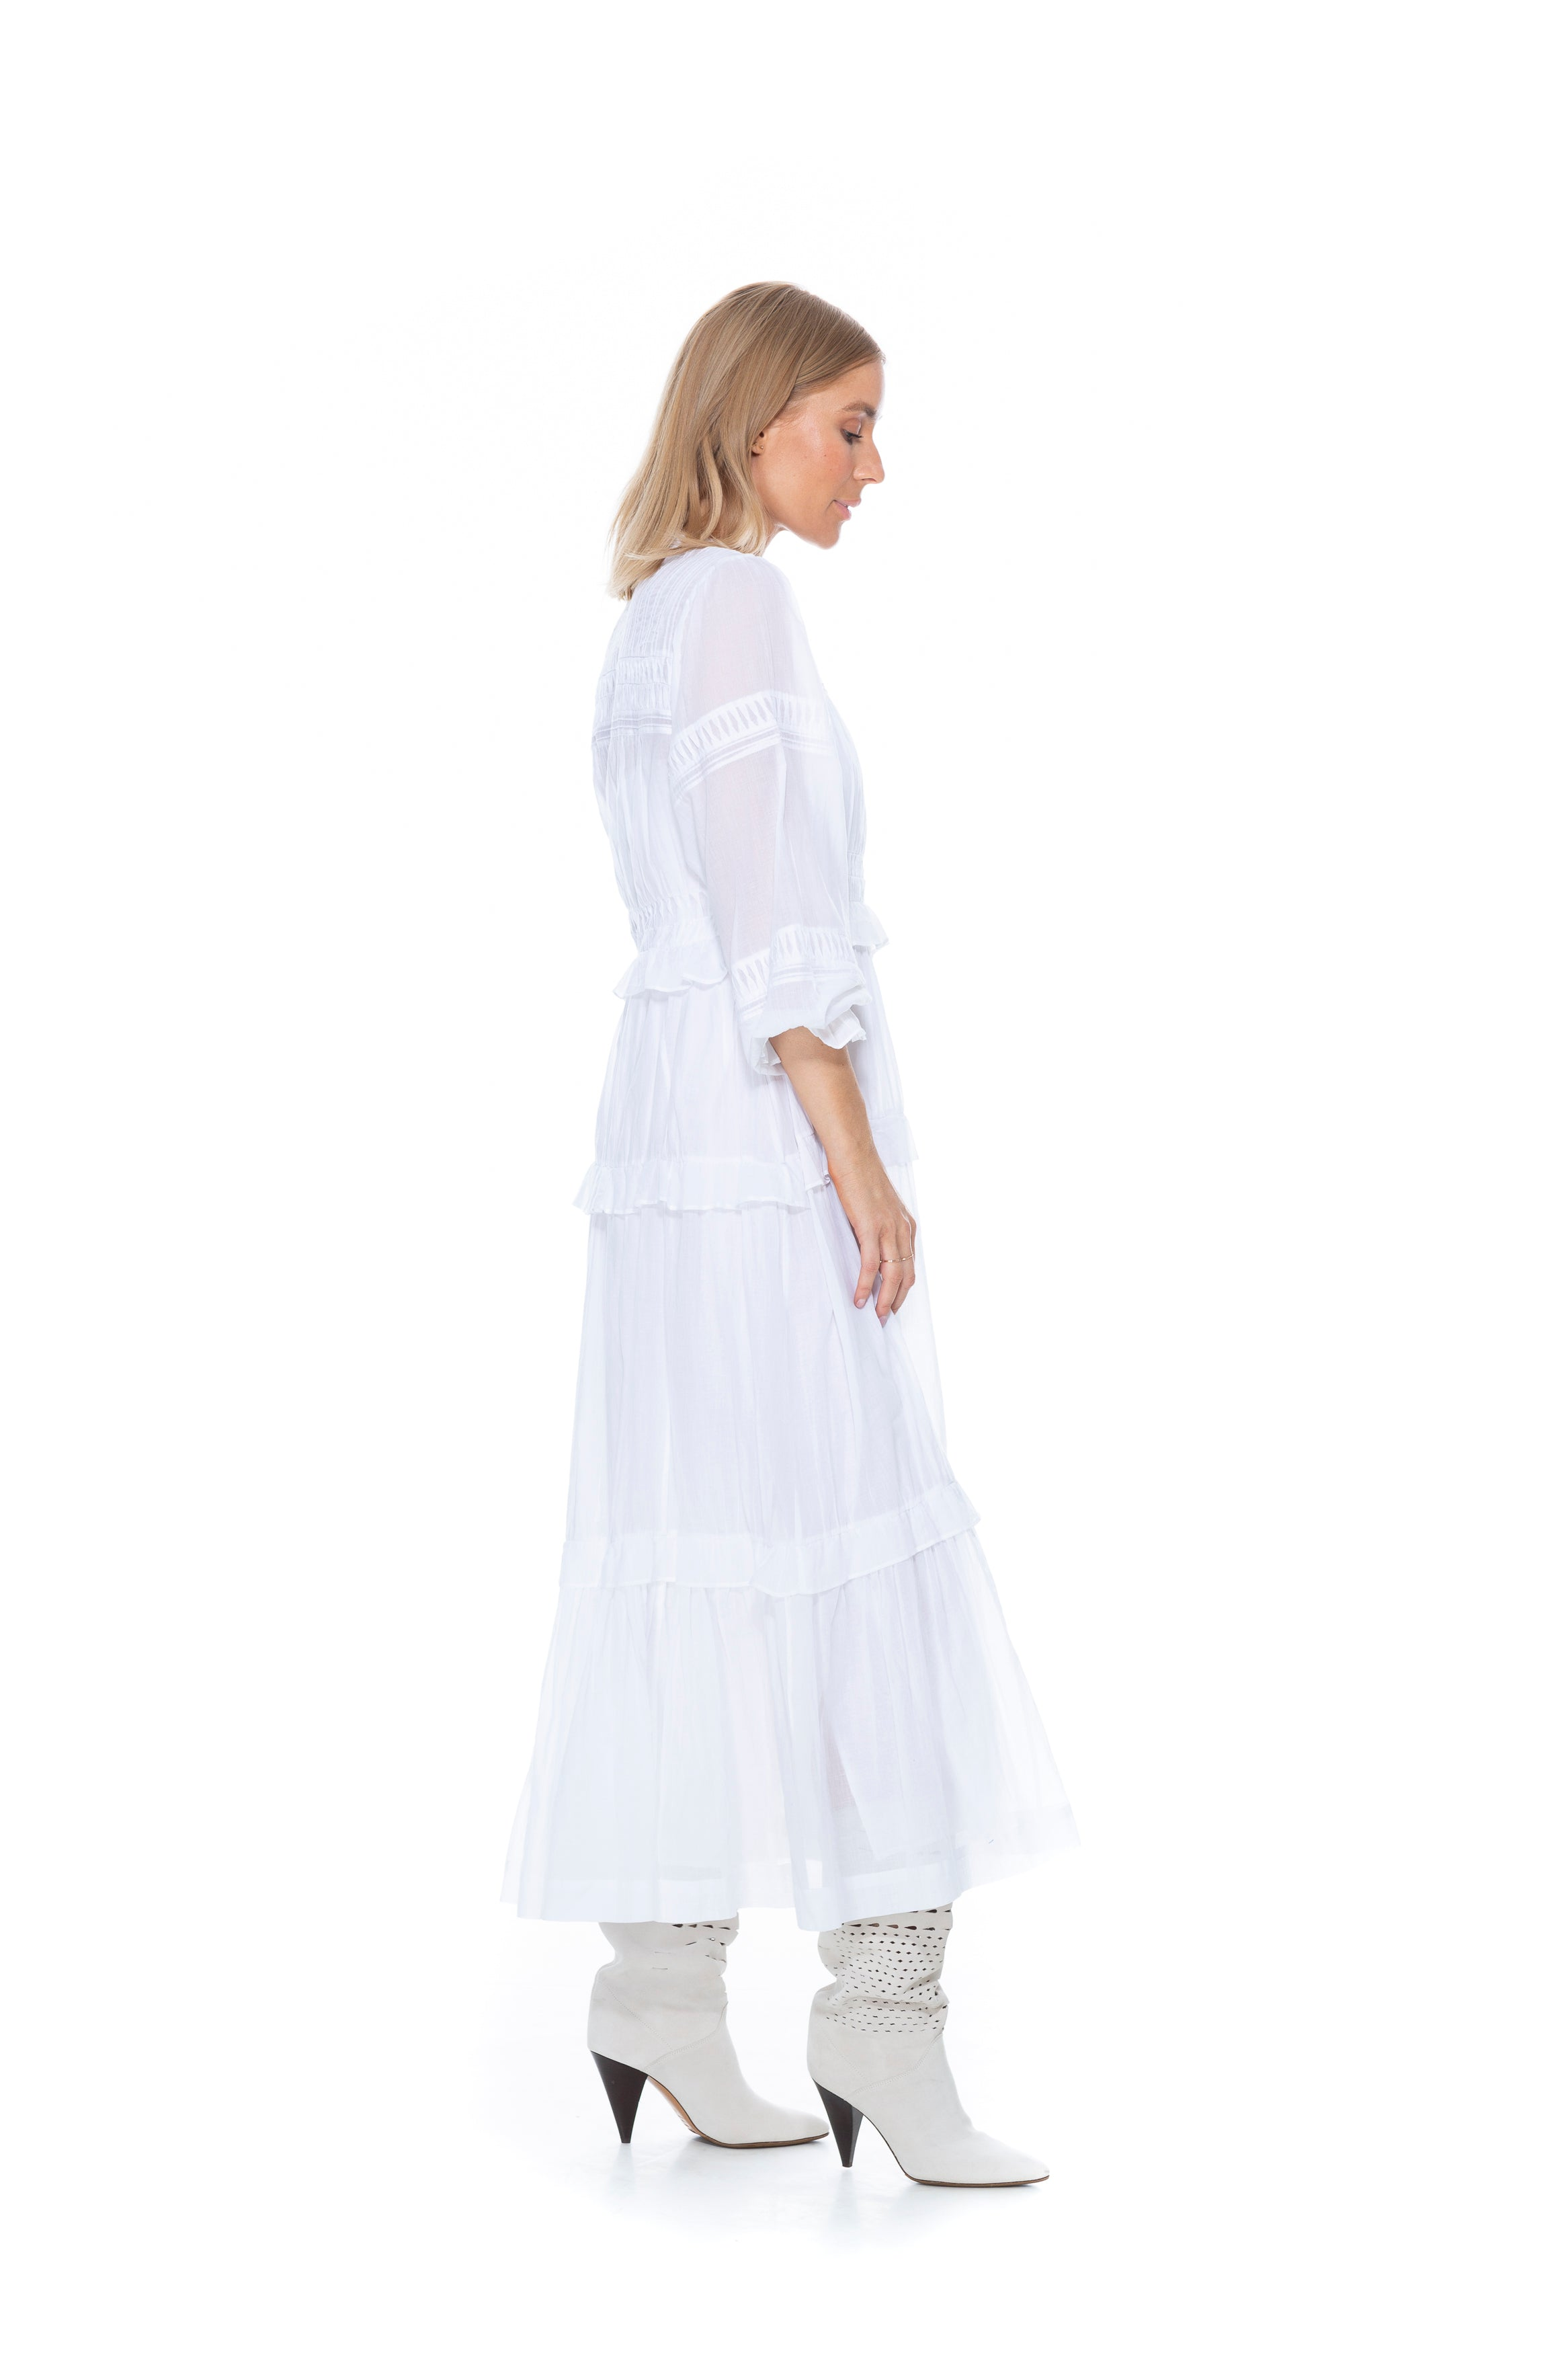 LIKOYA DRESS WHITE